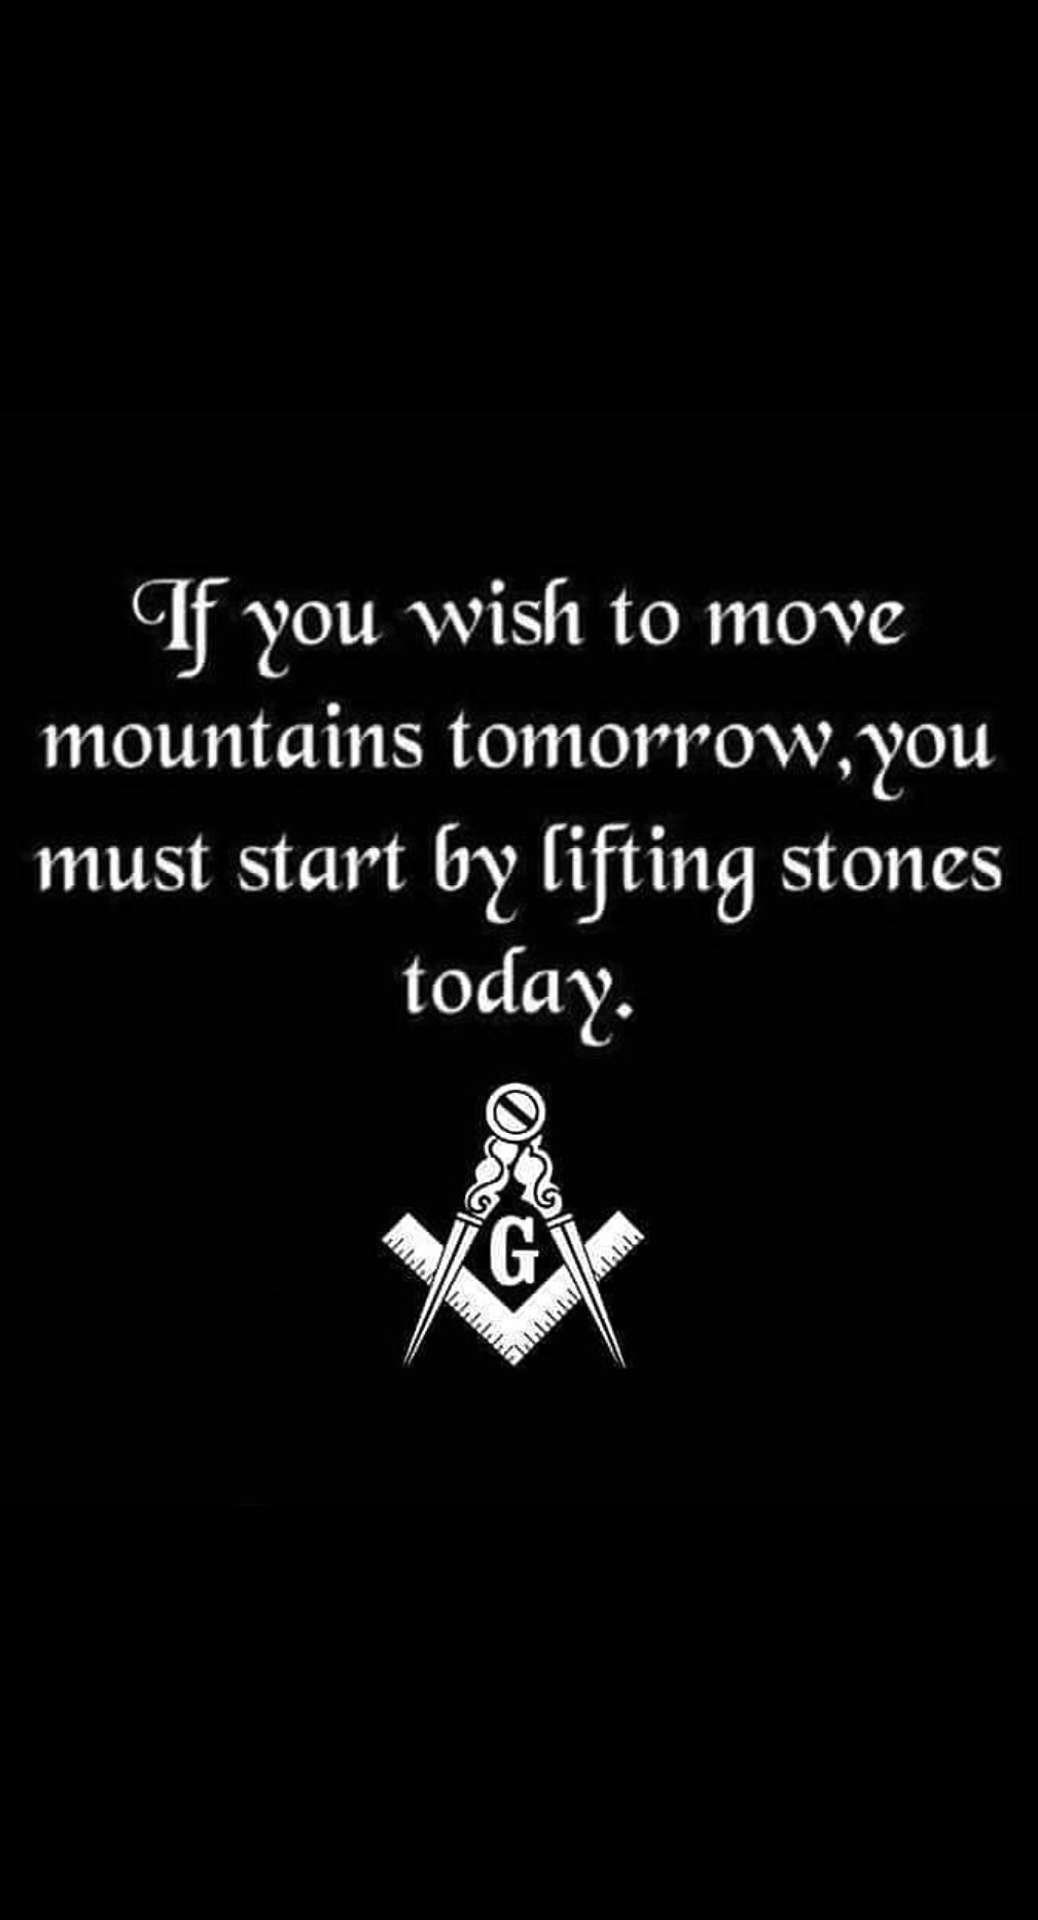 le you wish to move mountains tomorrowyou must start by [ifting stones today. 7% https://inspirational.ly